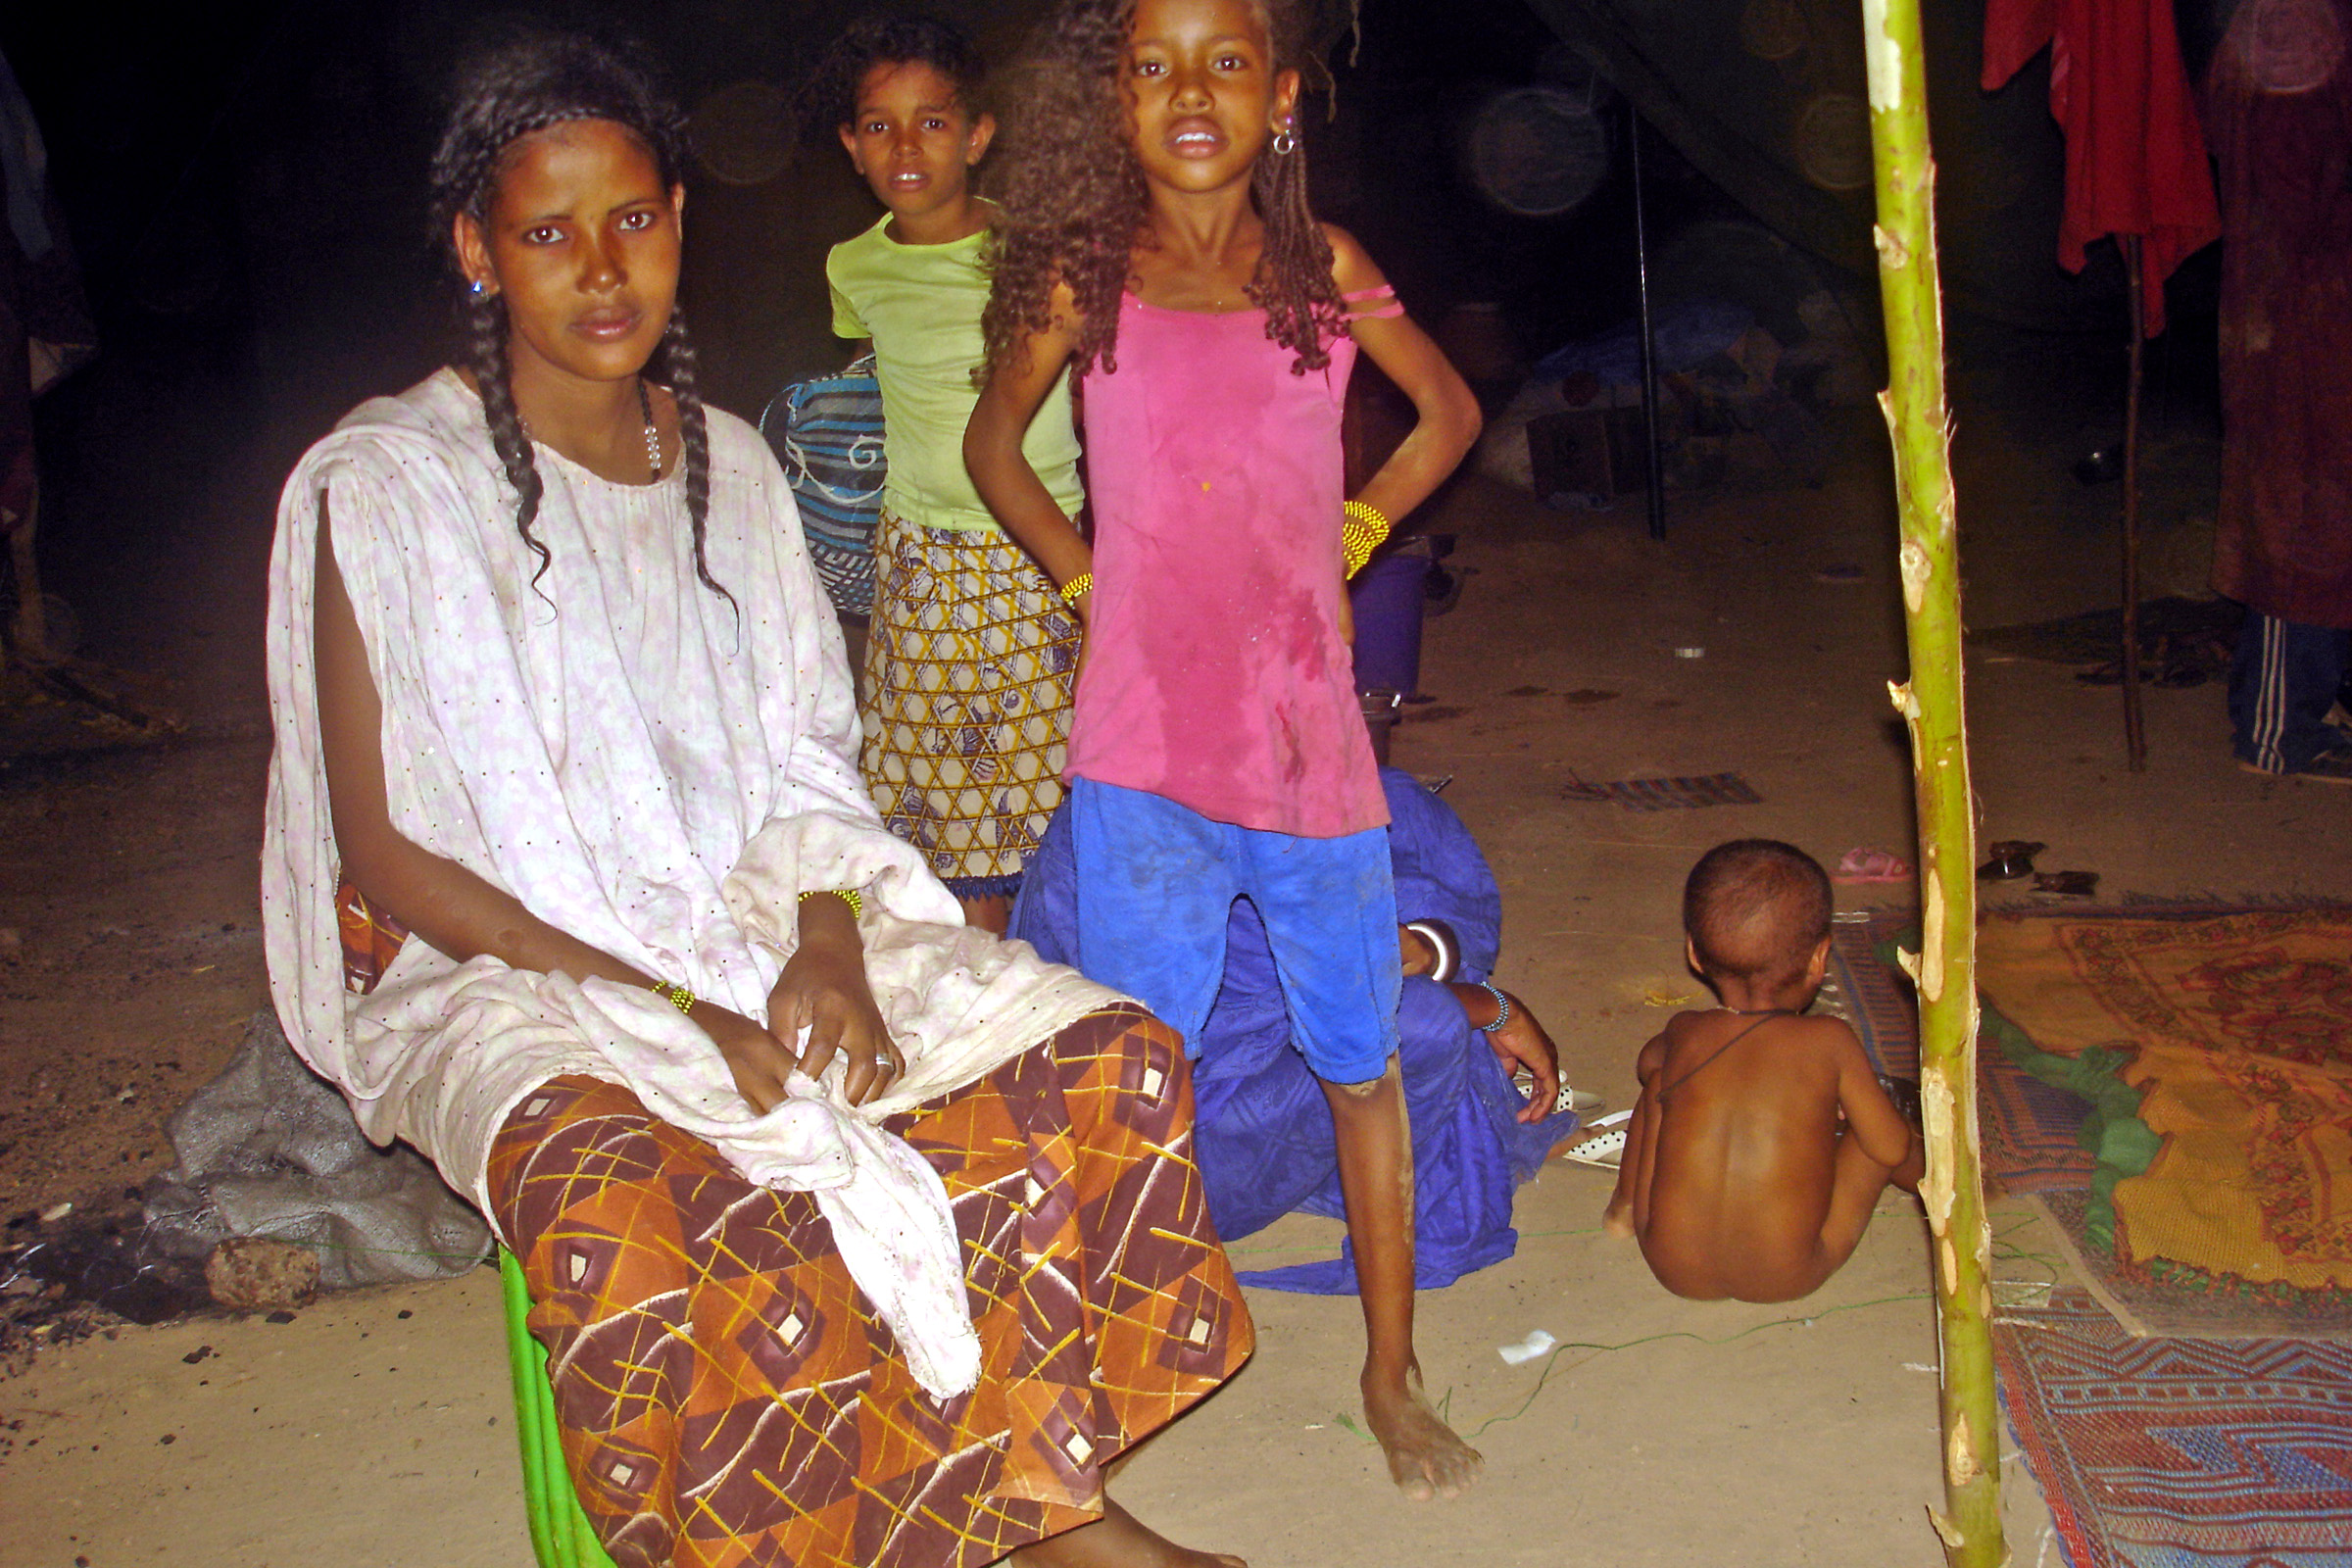 Malian refugees at Somgande refugee camp just outside of the capital Ouagadougou. Tuareg and Arab families have fled conflict in Mali as MNLA and Ansar Dine rebel groups took control of the regions of Kidal, Timbuktu and Gao